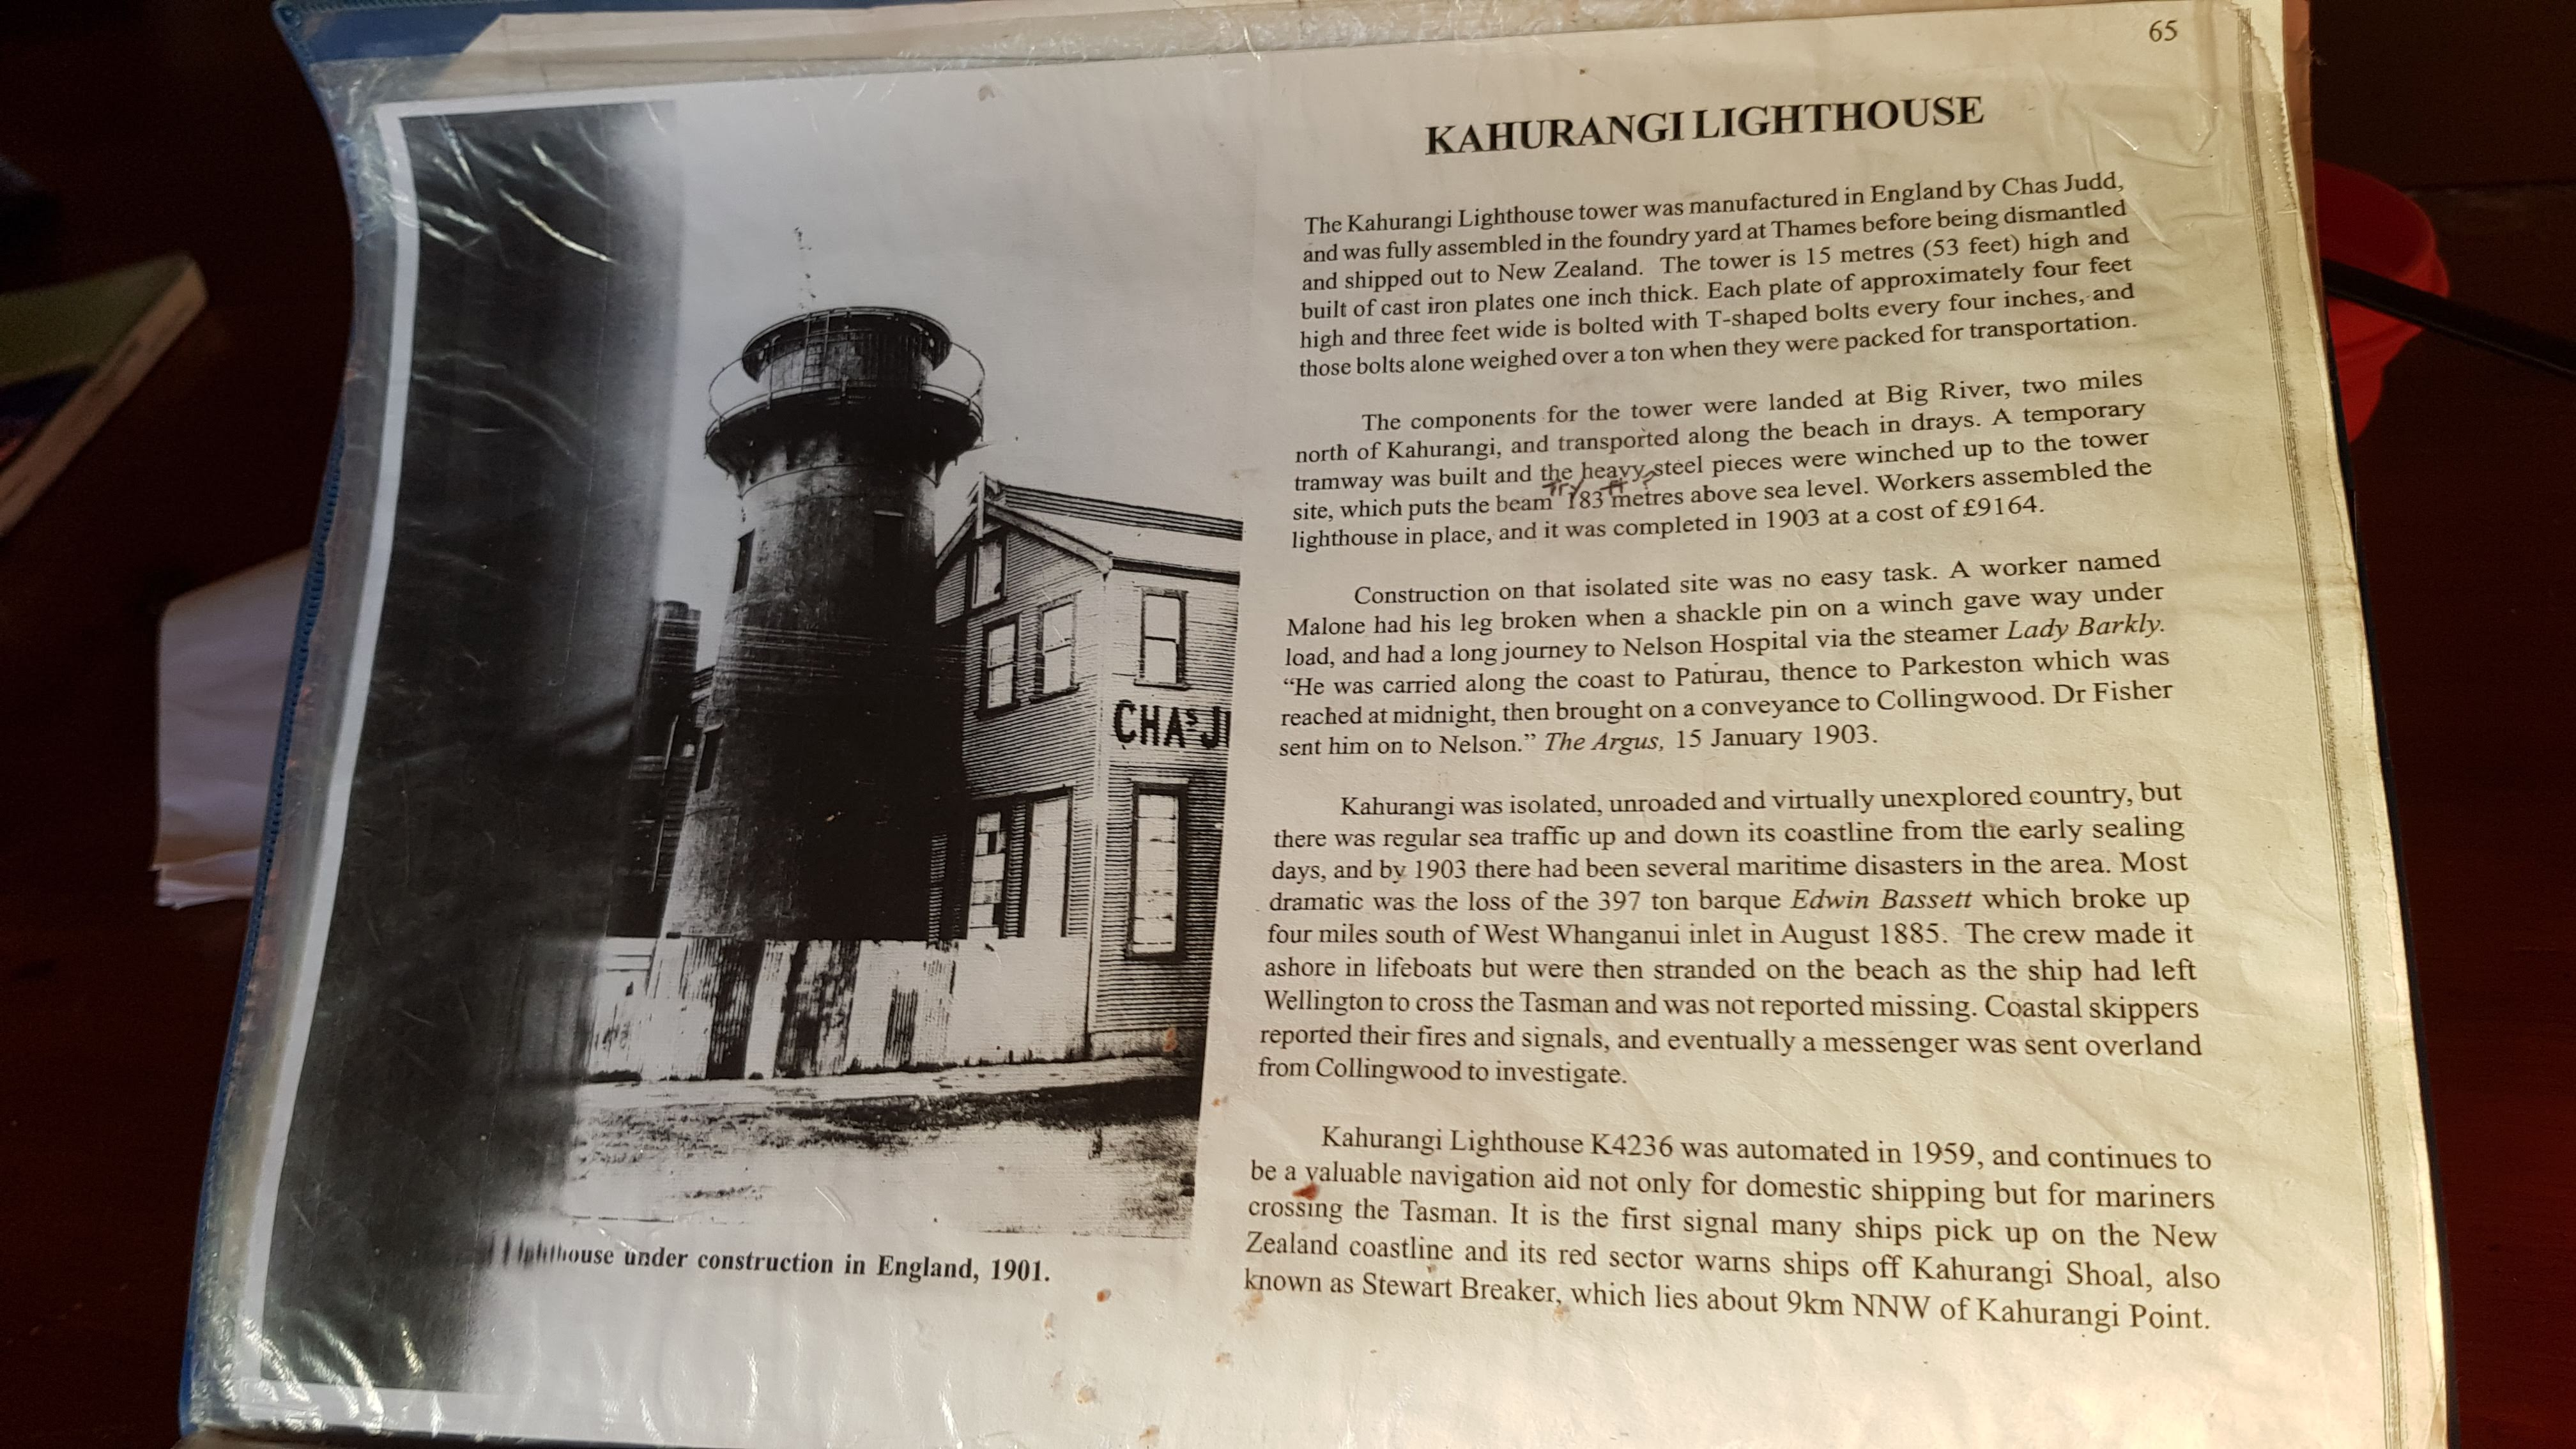 Information folder in the keepers house